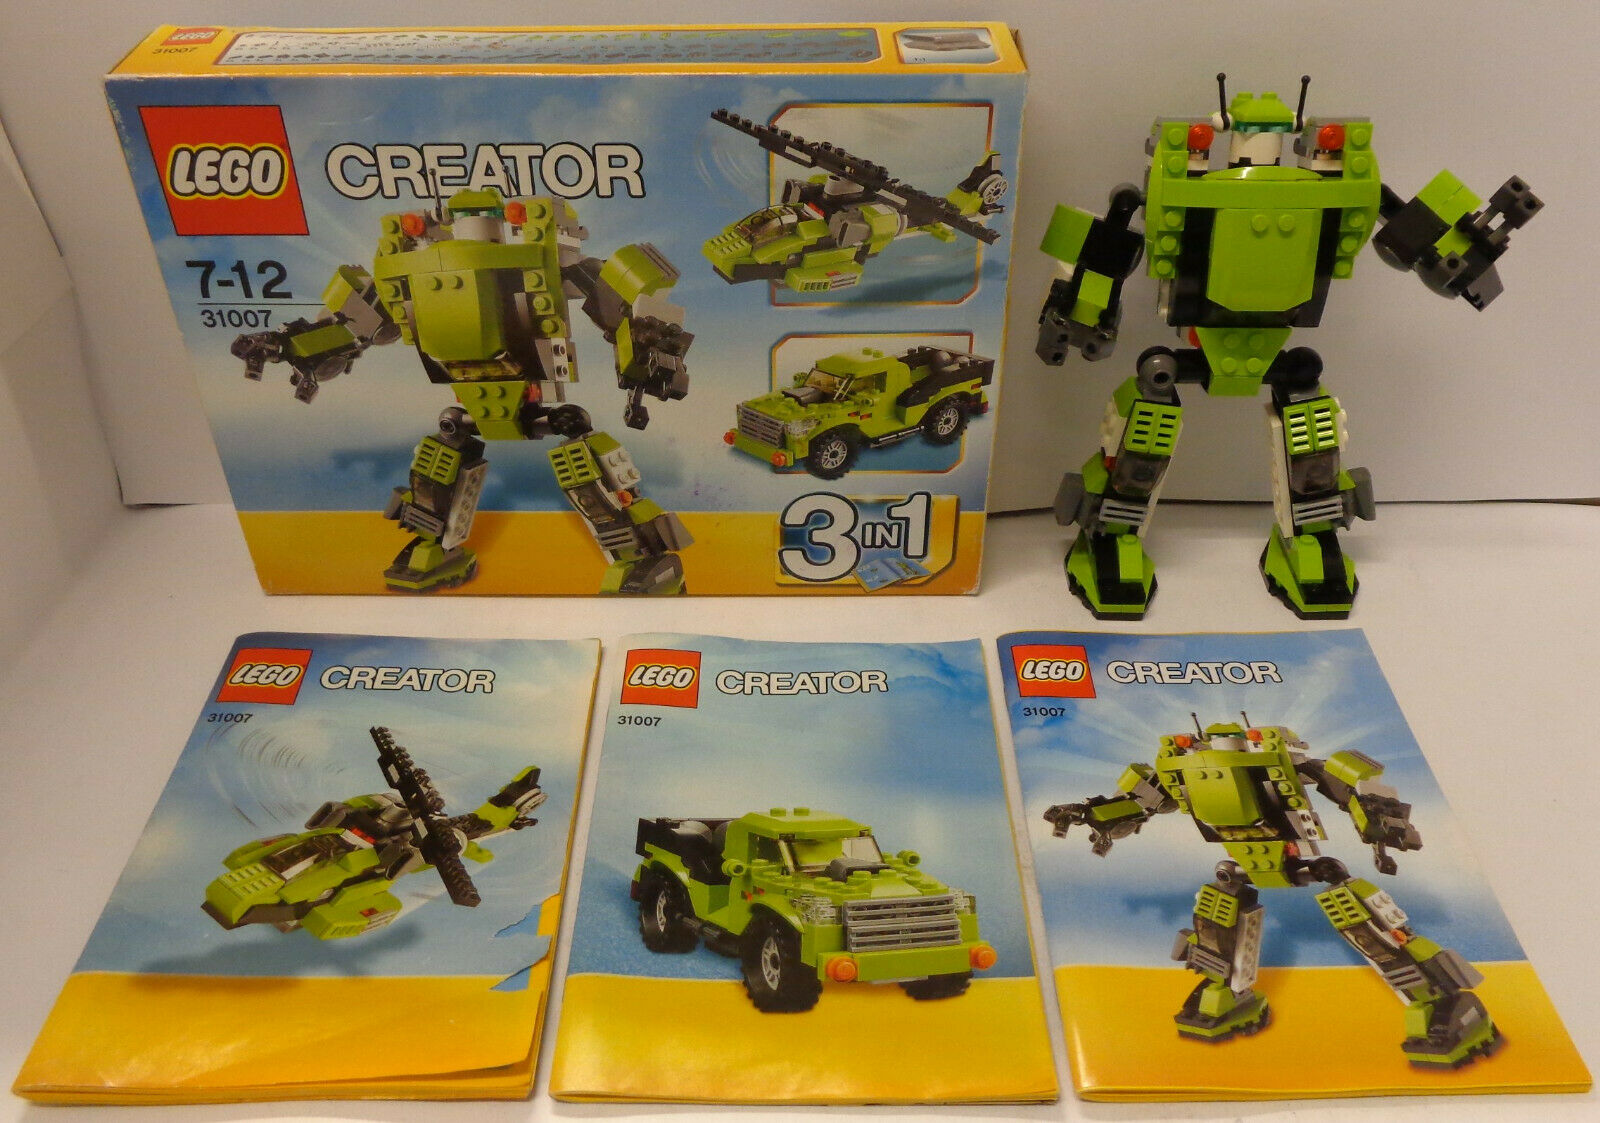 Gioco gioco Play LEGO Creator 2013 Set 31007 Robot 3 in 1 - energia Mech -